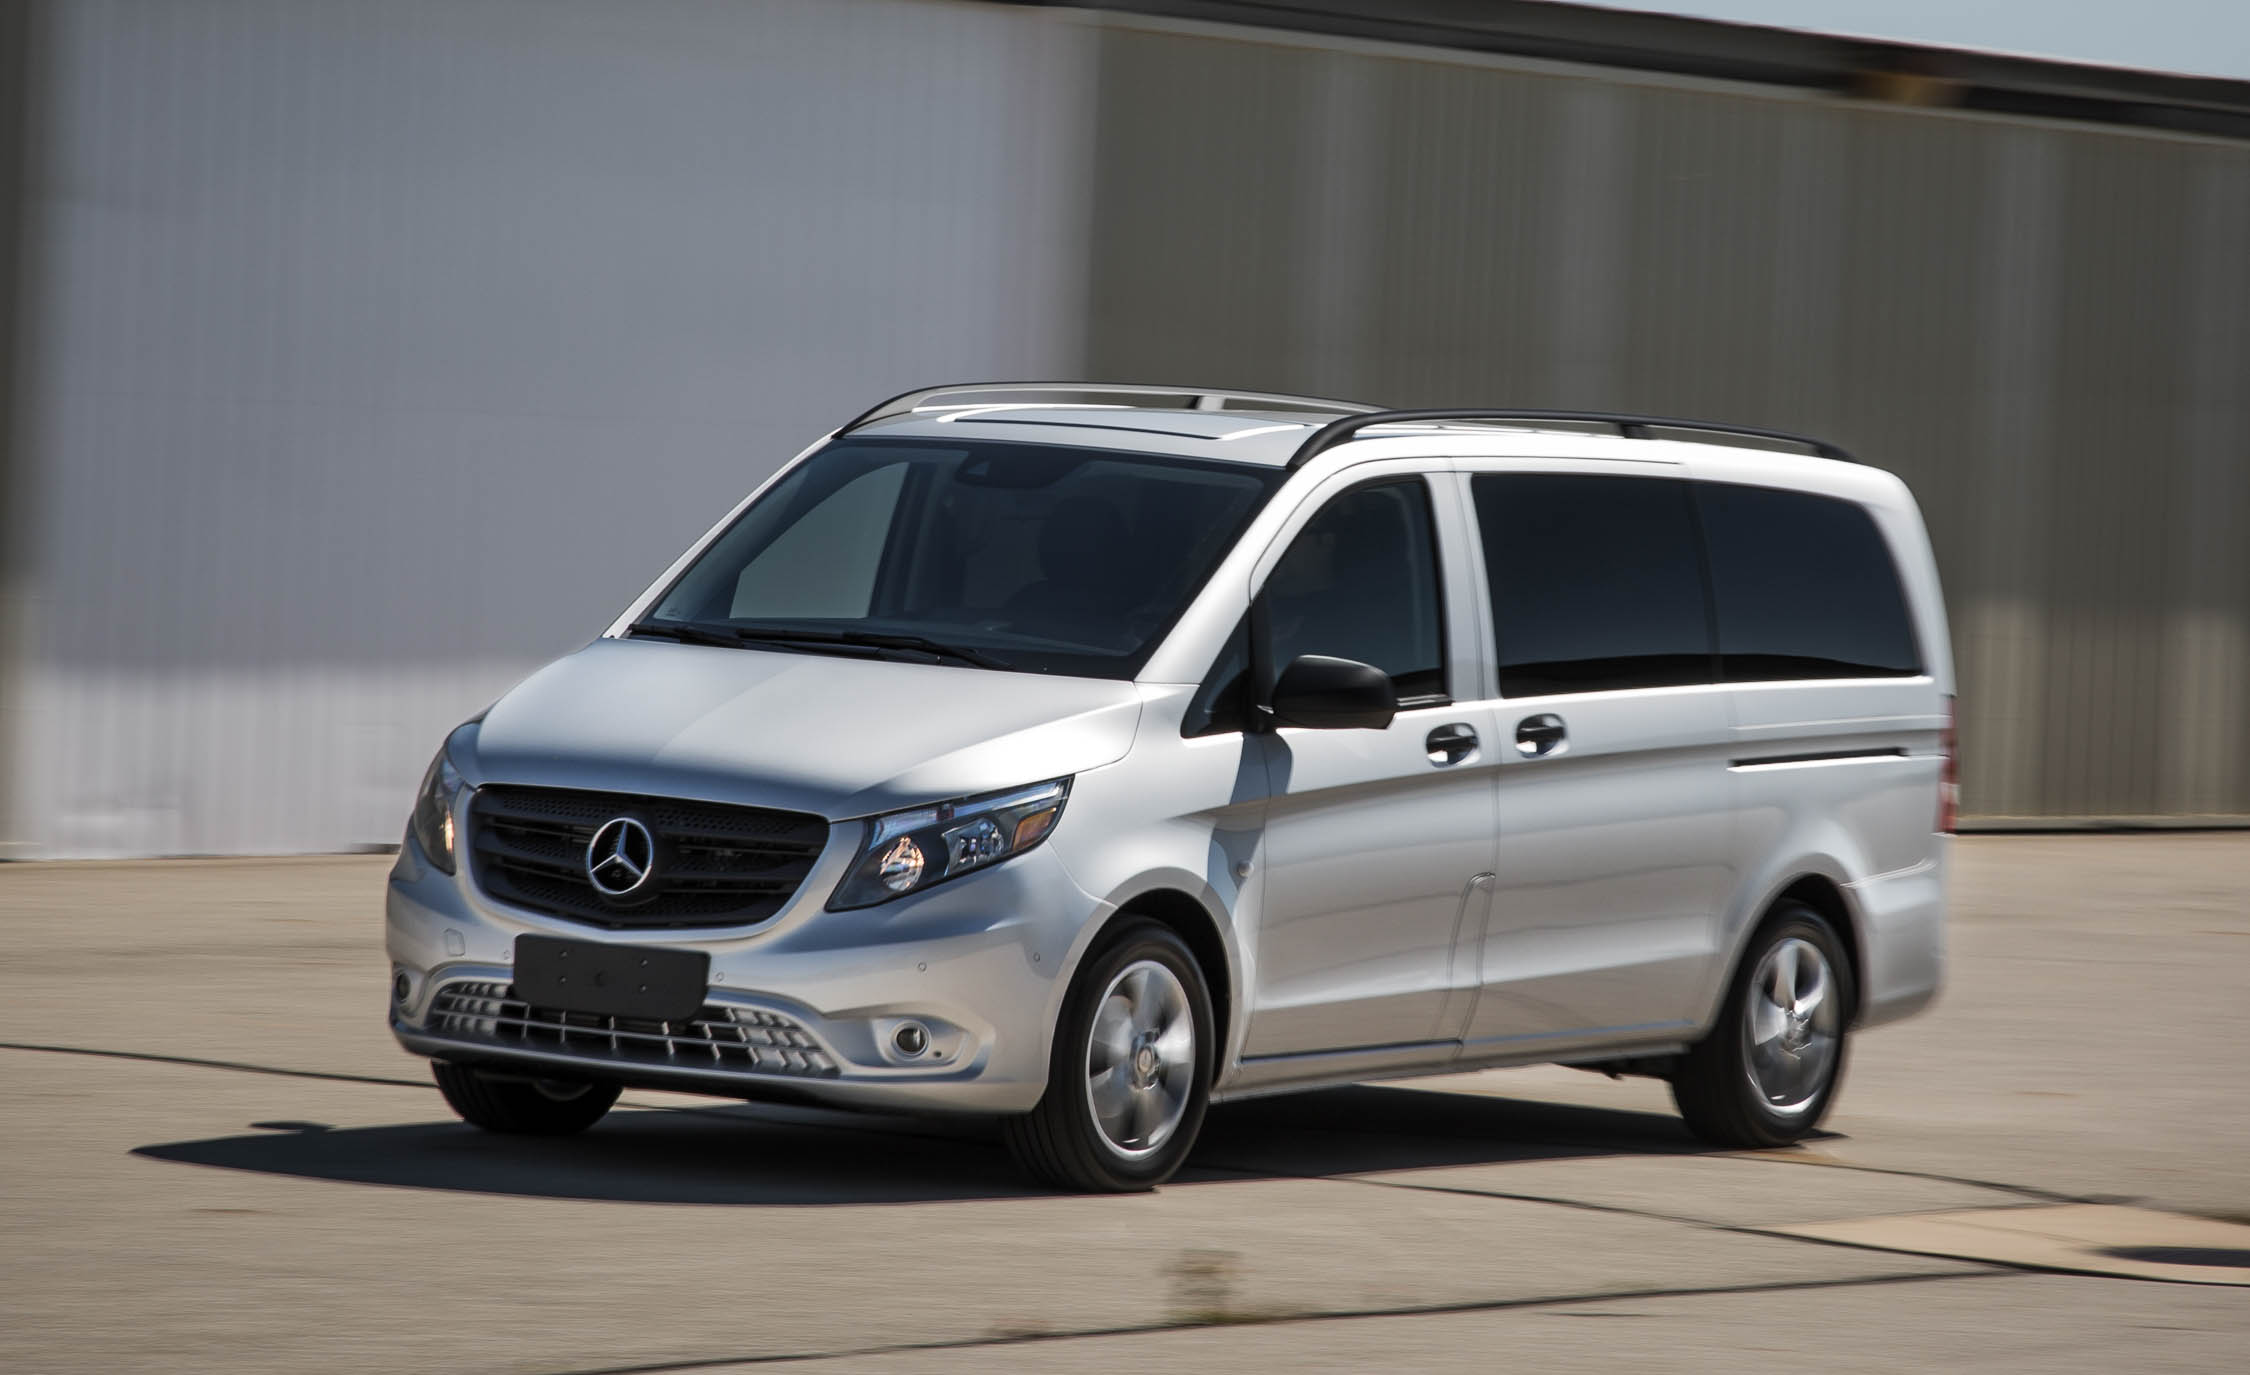 2016 Mercedes-Benz Metris Pictures Gallery (30 Images)